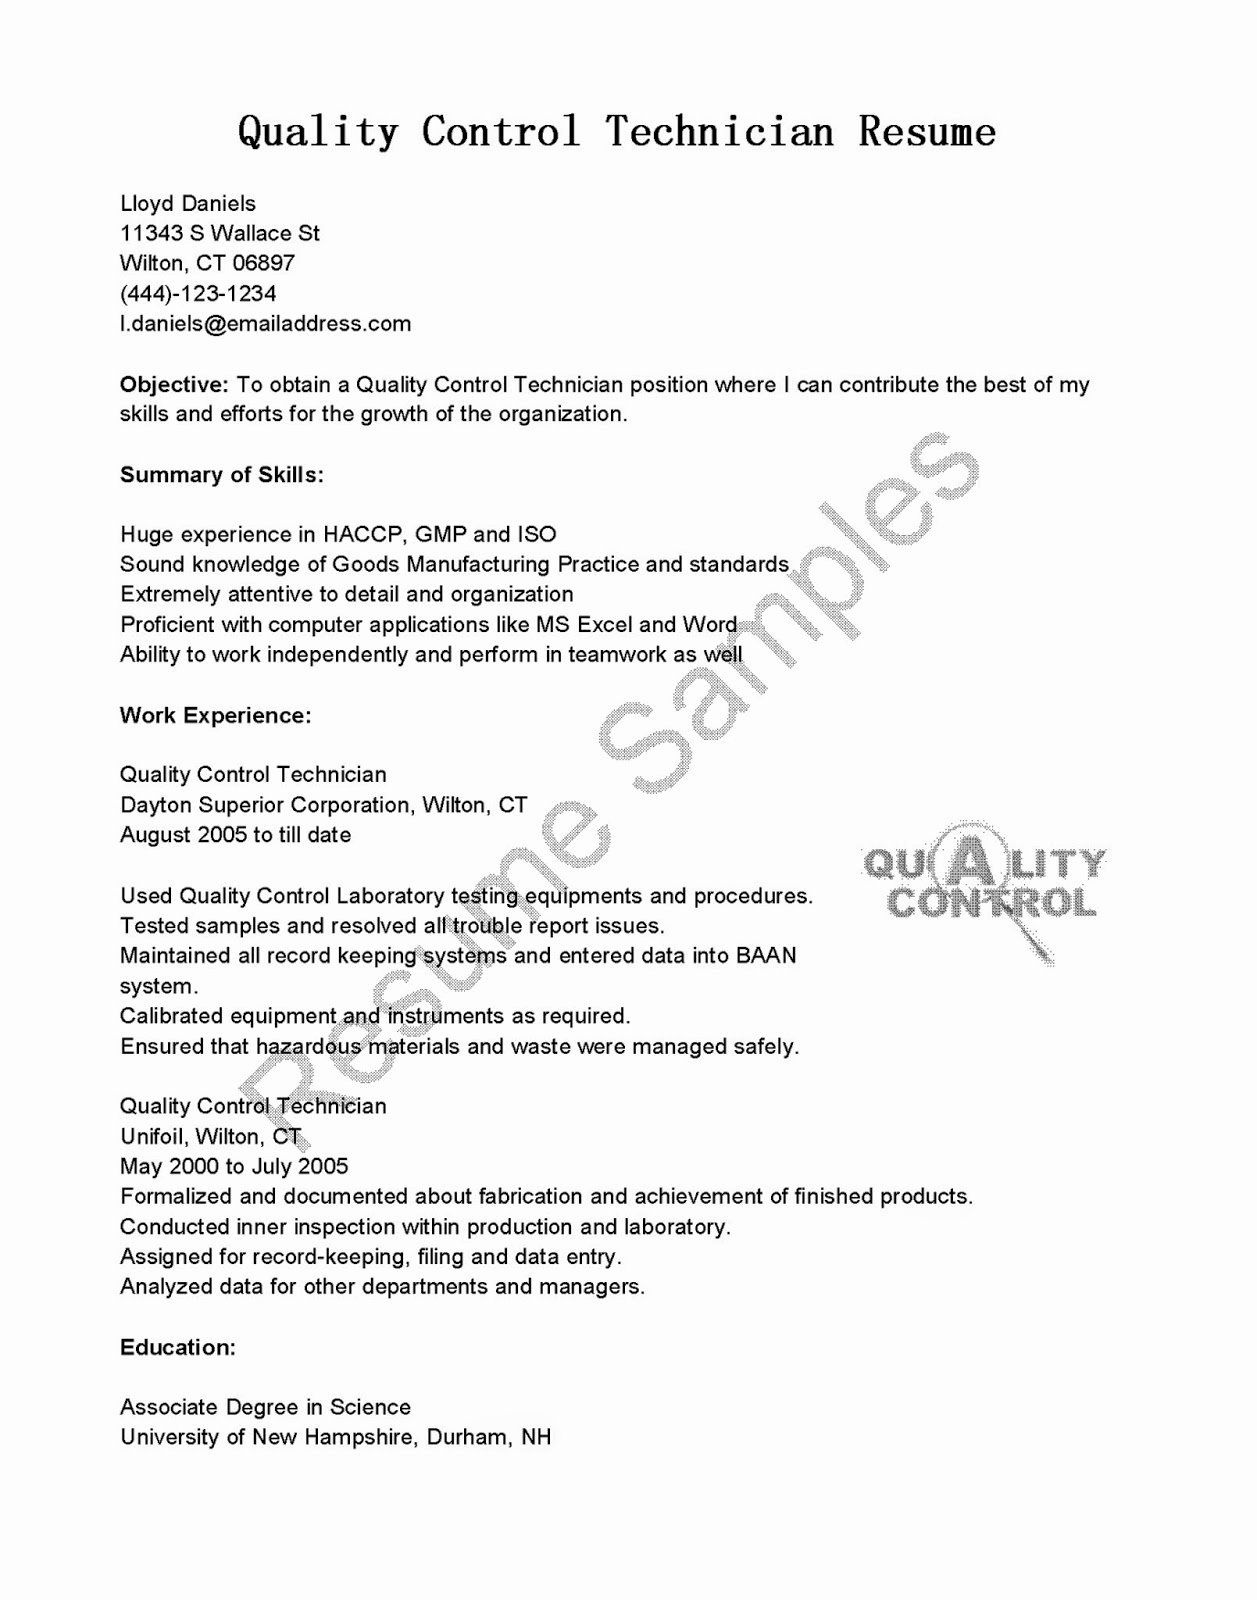 Cable Technician Job Description Resume Awesome Resume Samples